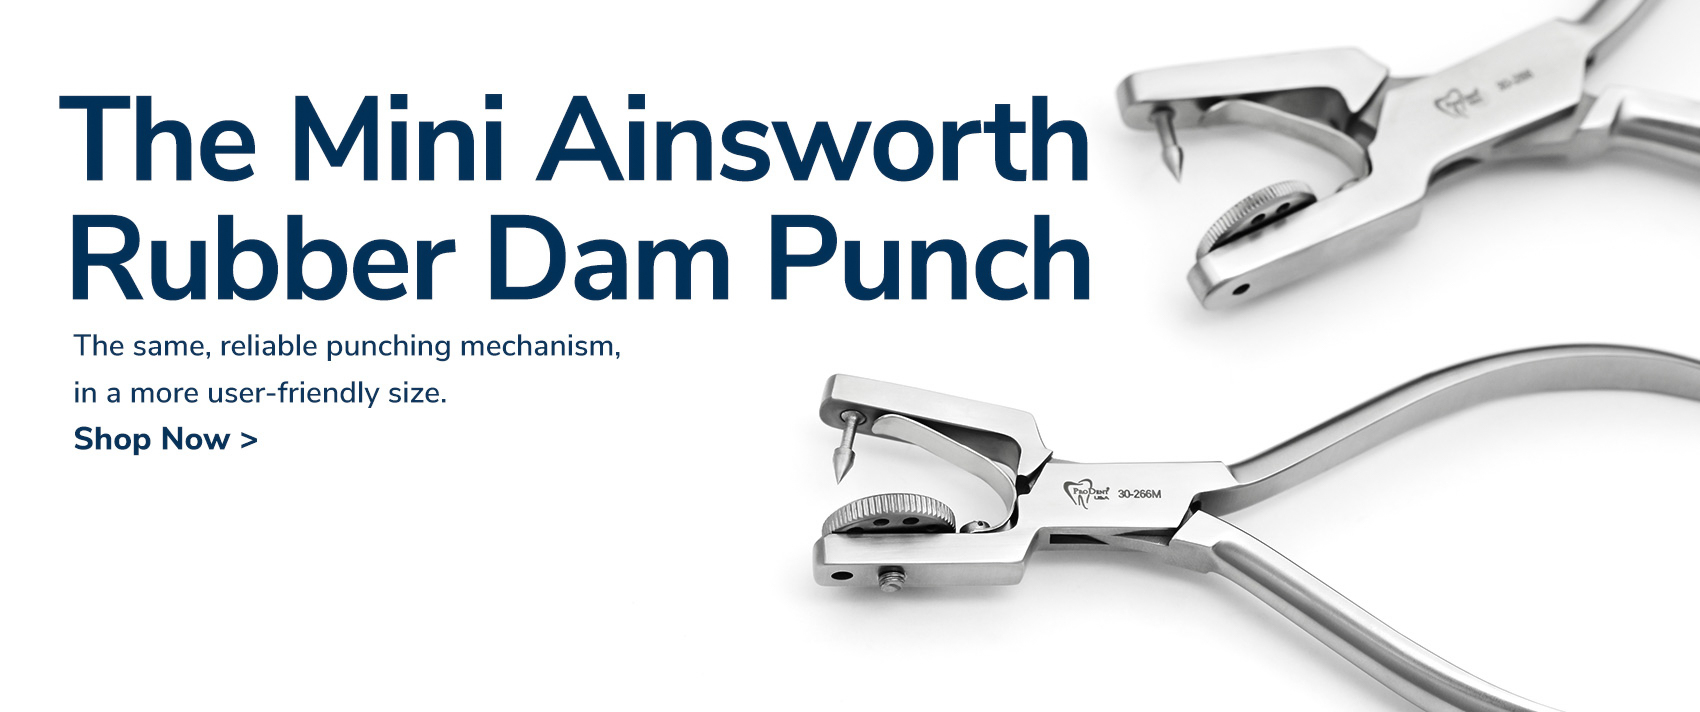 The Mini Ainsworth Rubber Dam Punch, Shop Now